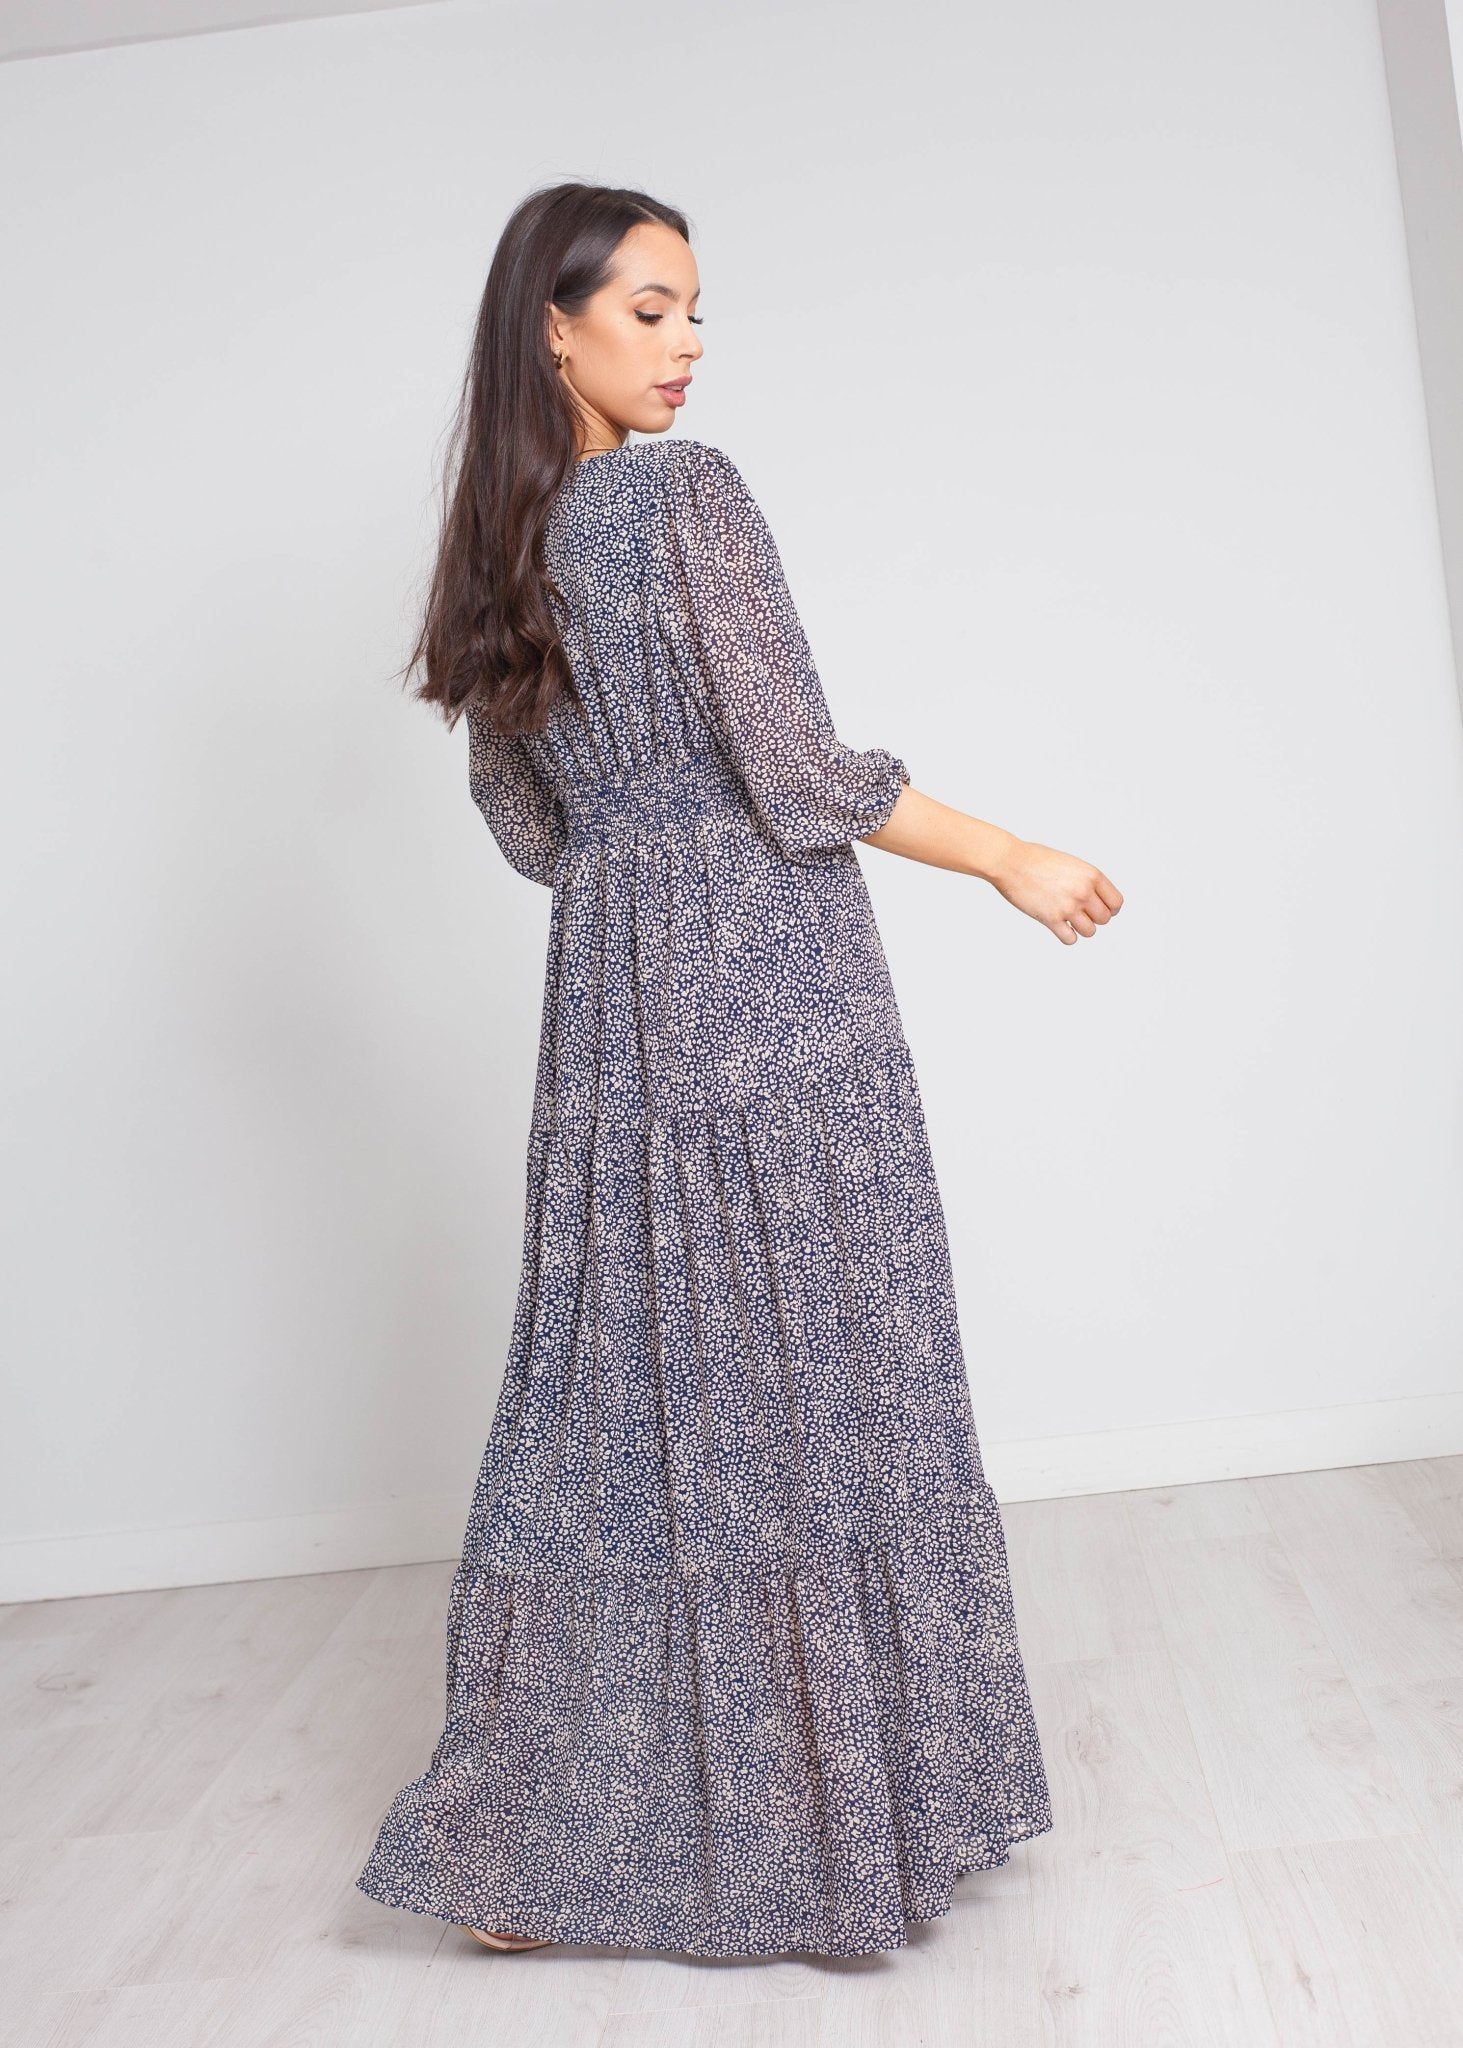 Nora Printed Maxi Dress In Navy - The Walk in Wardrobe